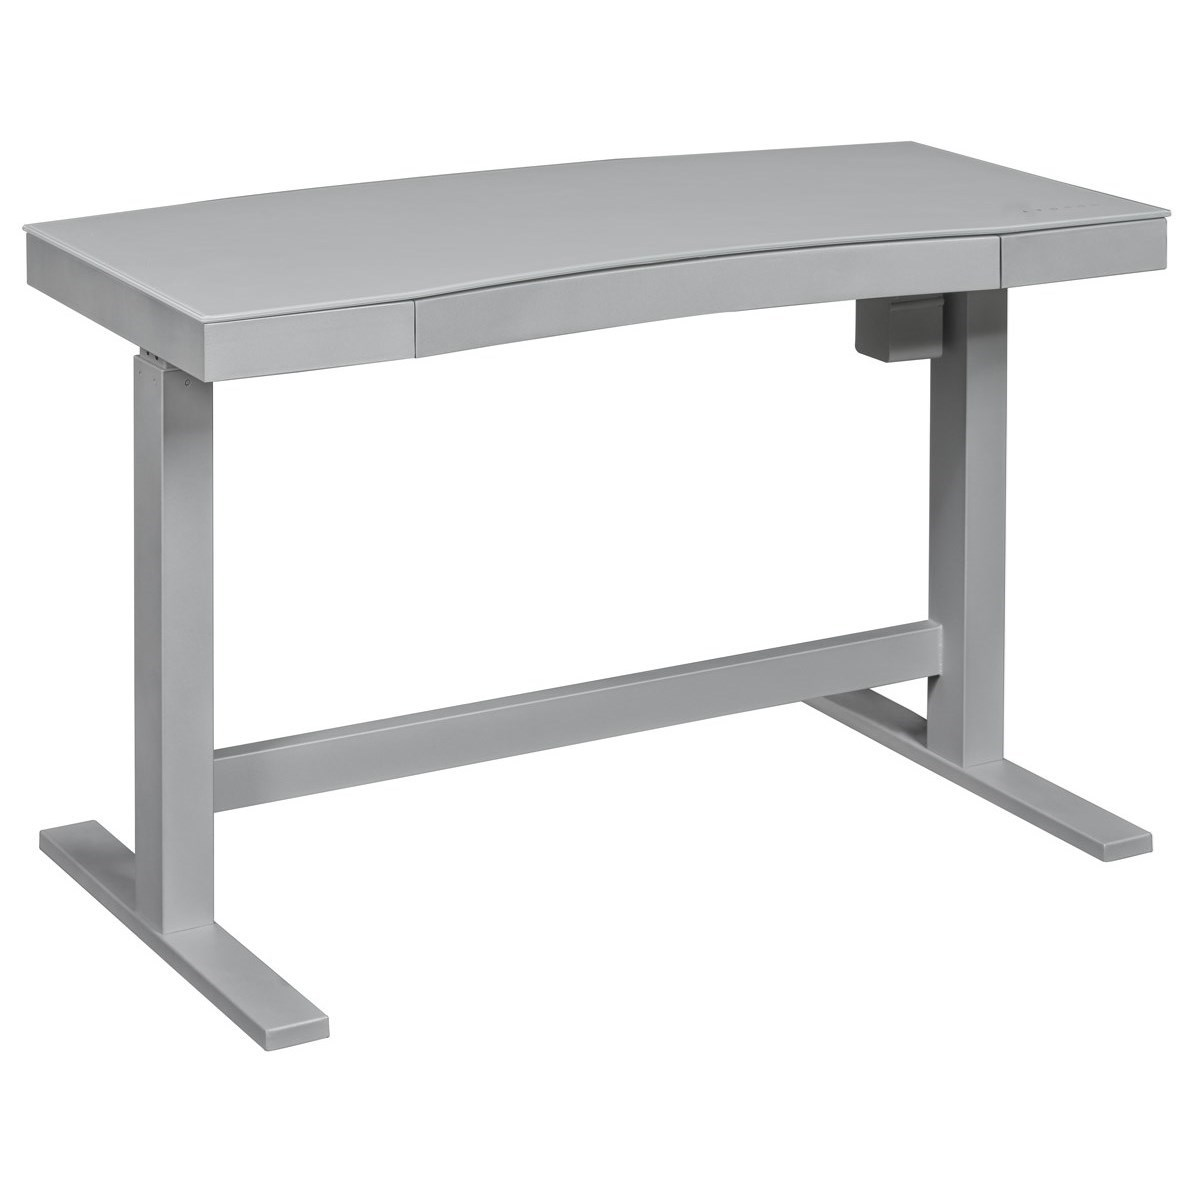 Ashford Curved White / Grey Adjustable Desk by Twin Star Home at Darvin Furniture